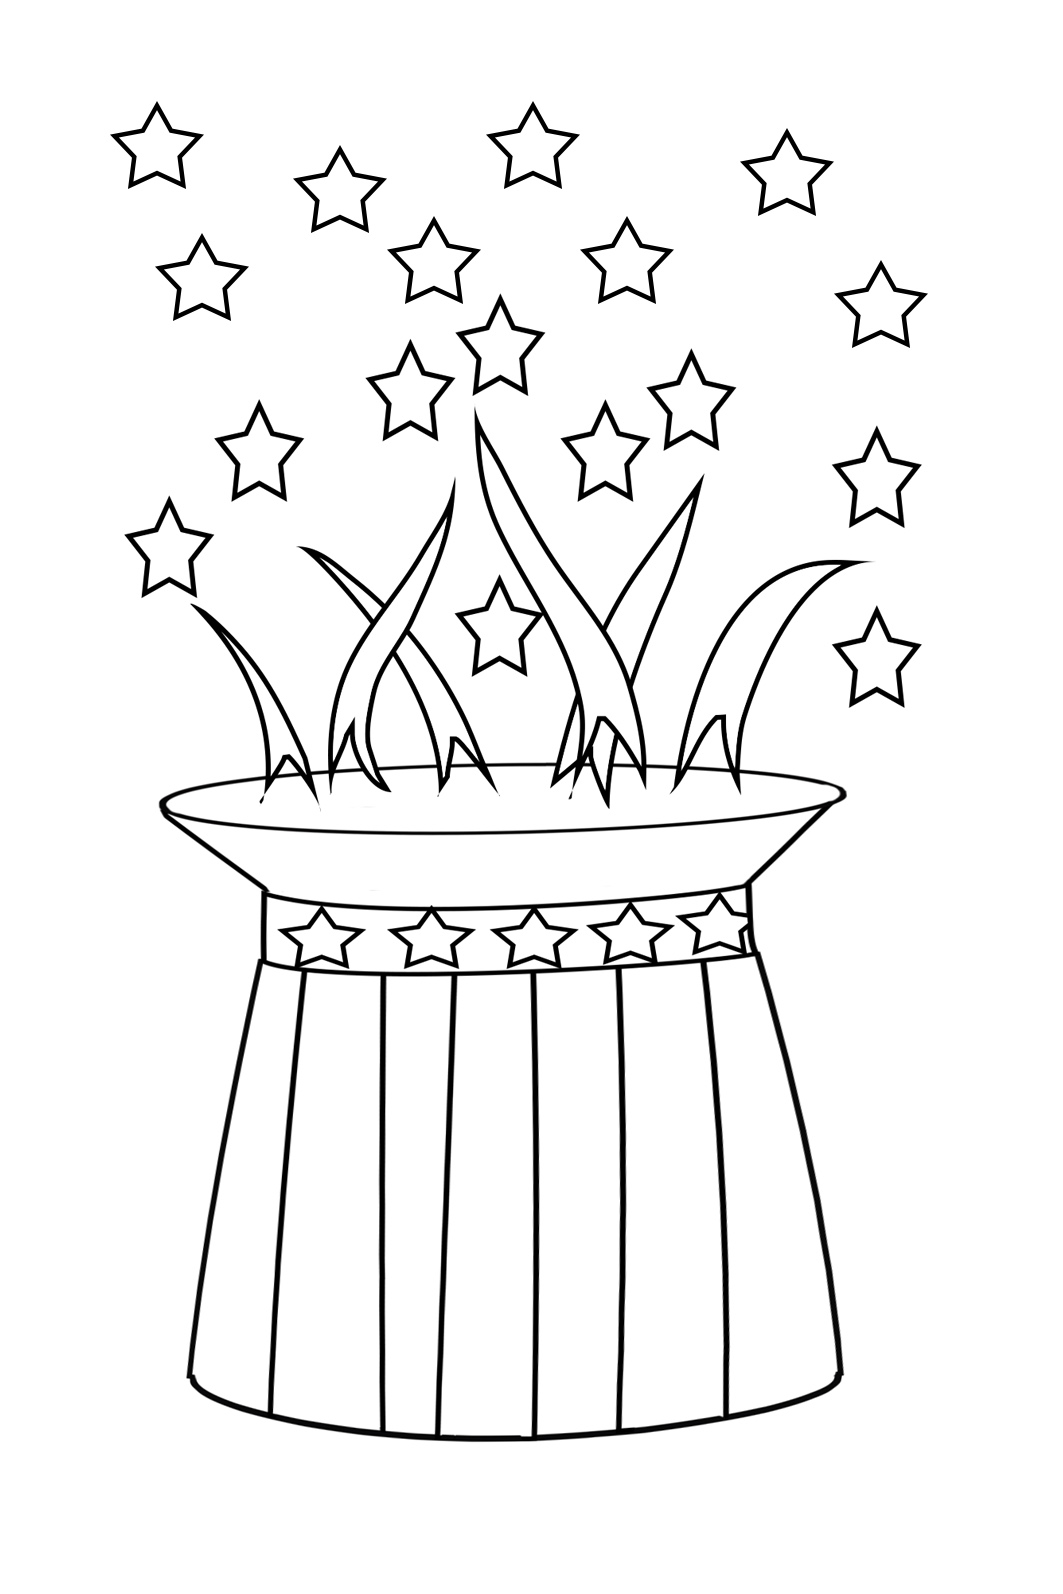 4 of july coloring sheets 4th of july coloring pages best coloring pages for kids sheets july coloring 4 of